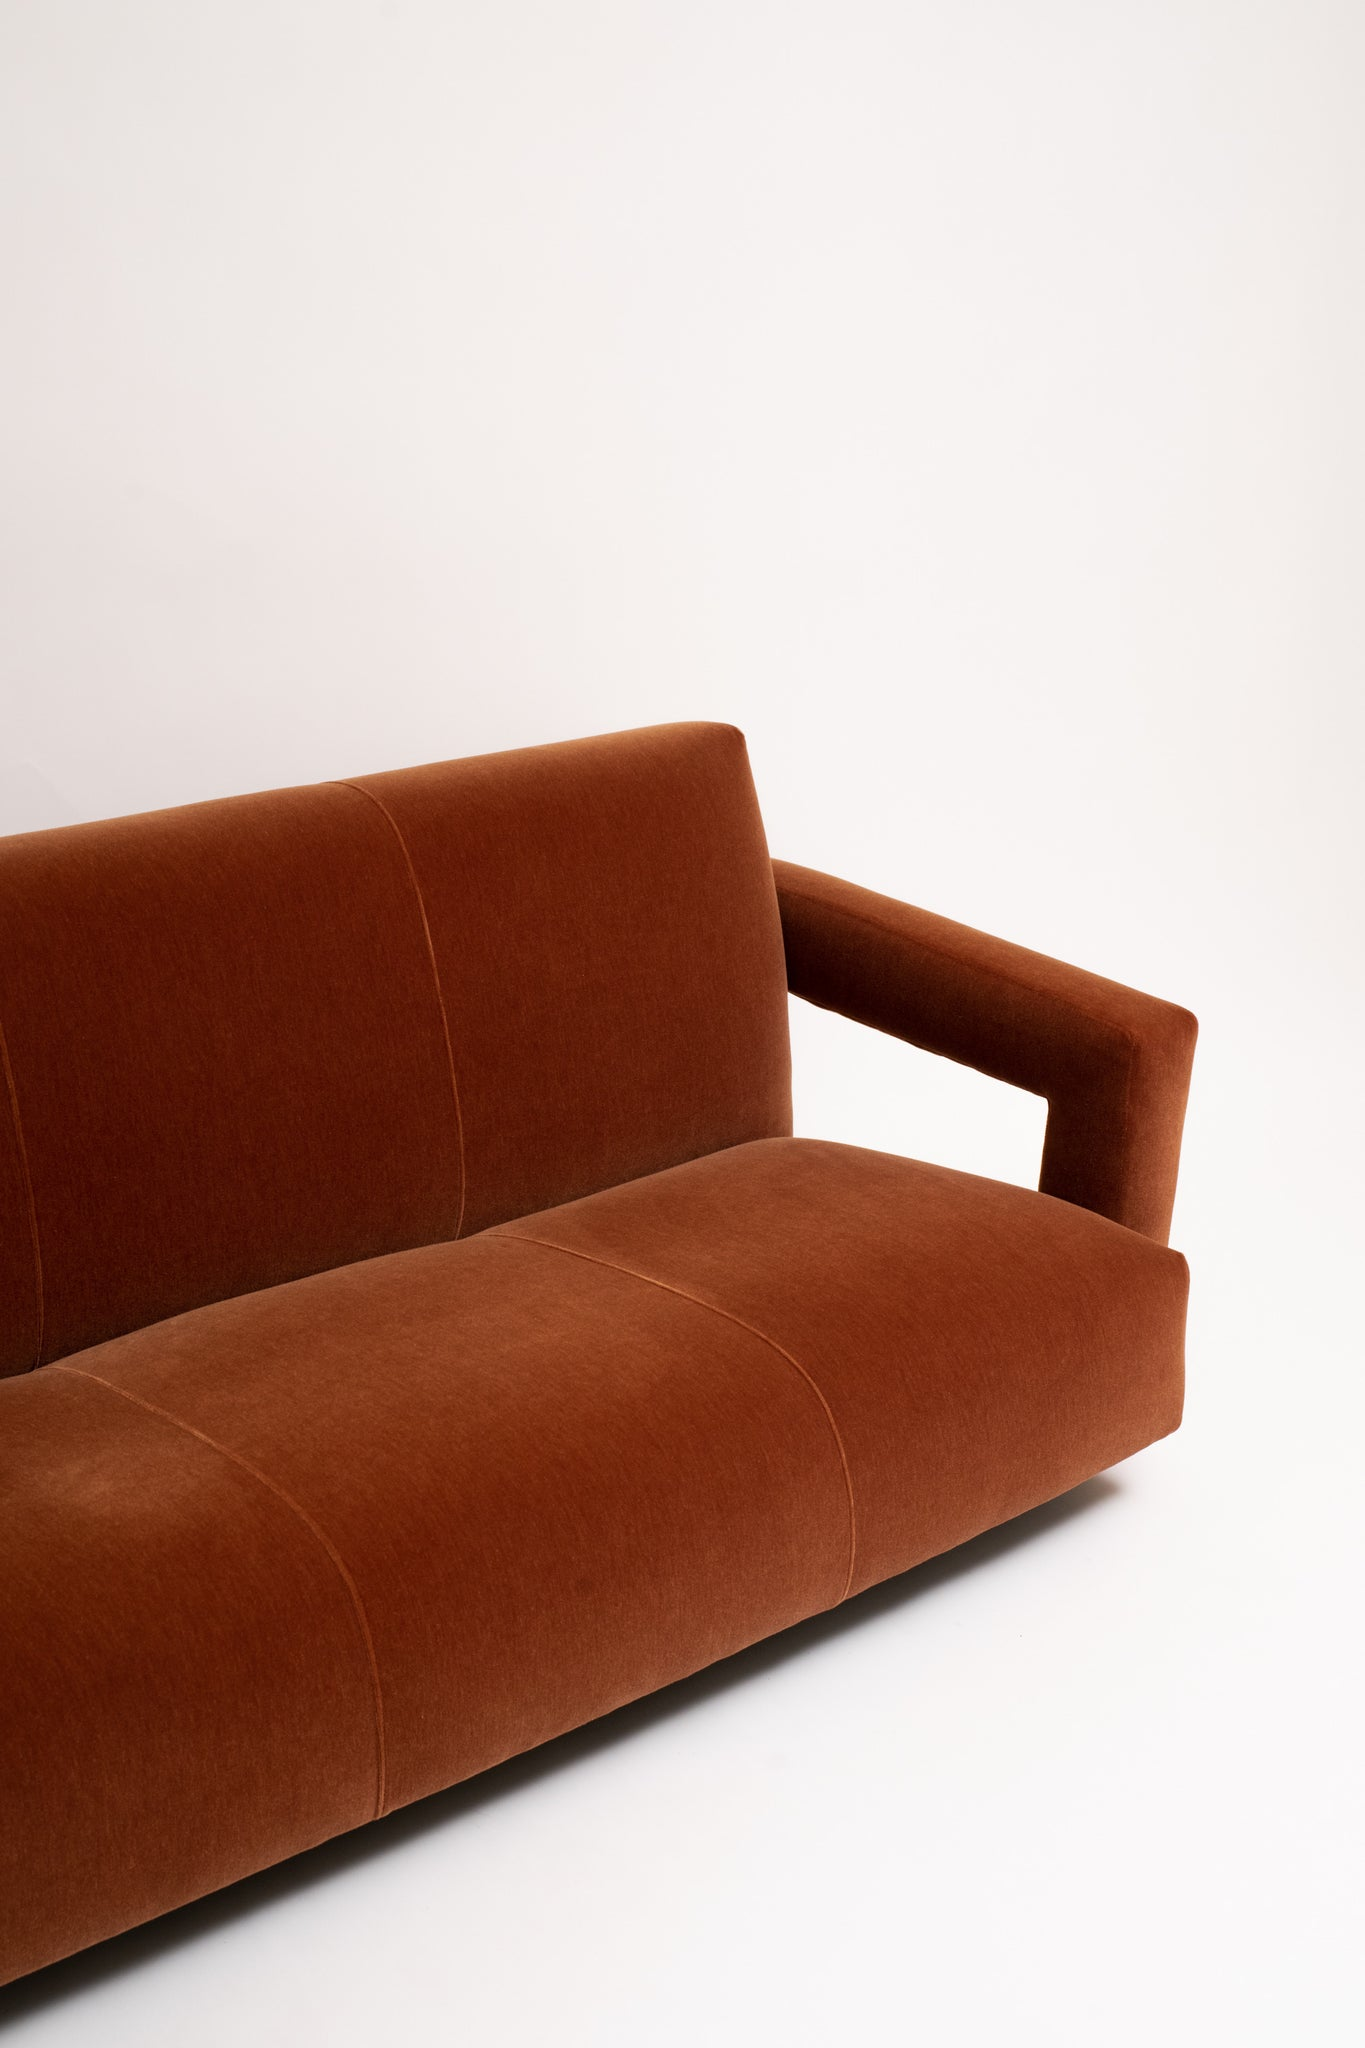 THREE-SEATER SOFA FOR METZ & CO. GERRIT THOMAS RIETVELD, C. 1937